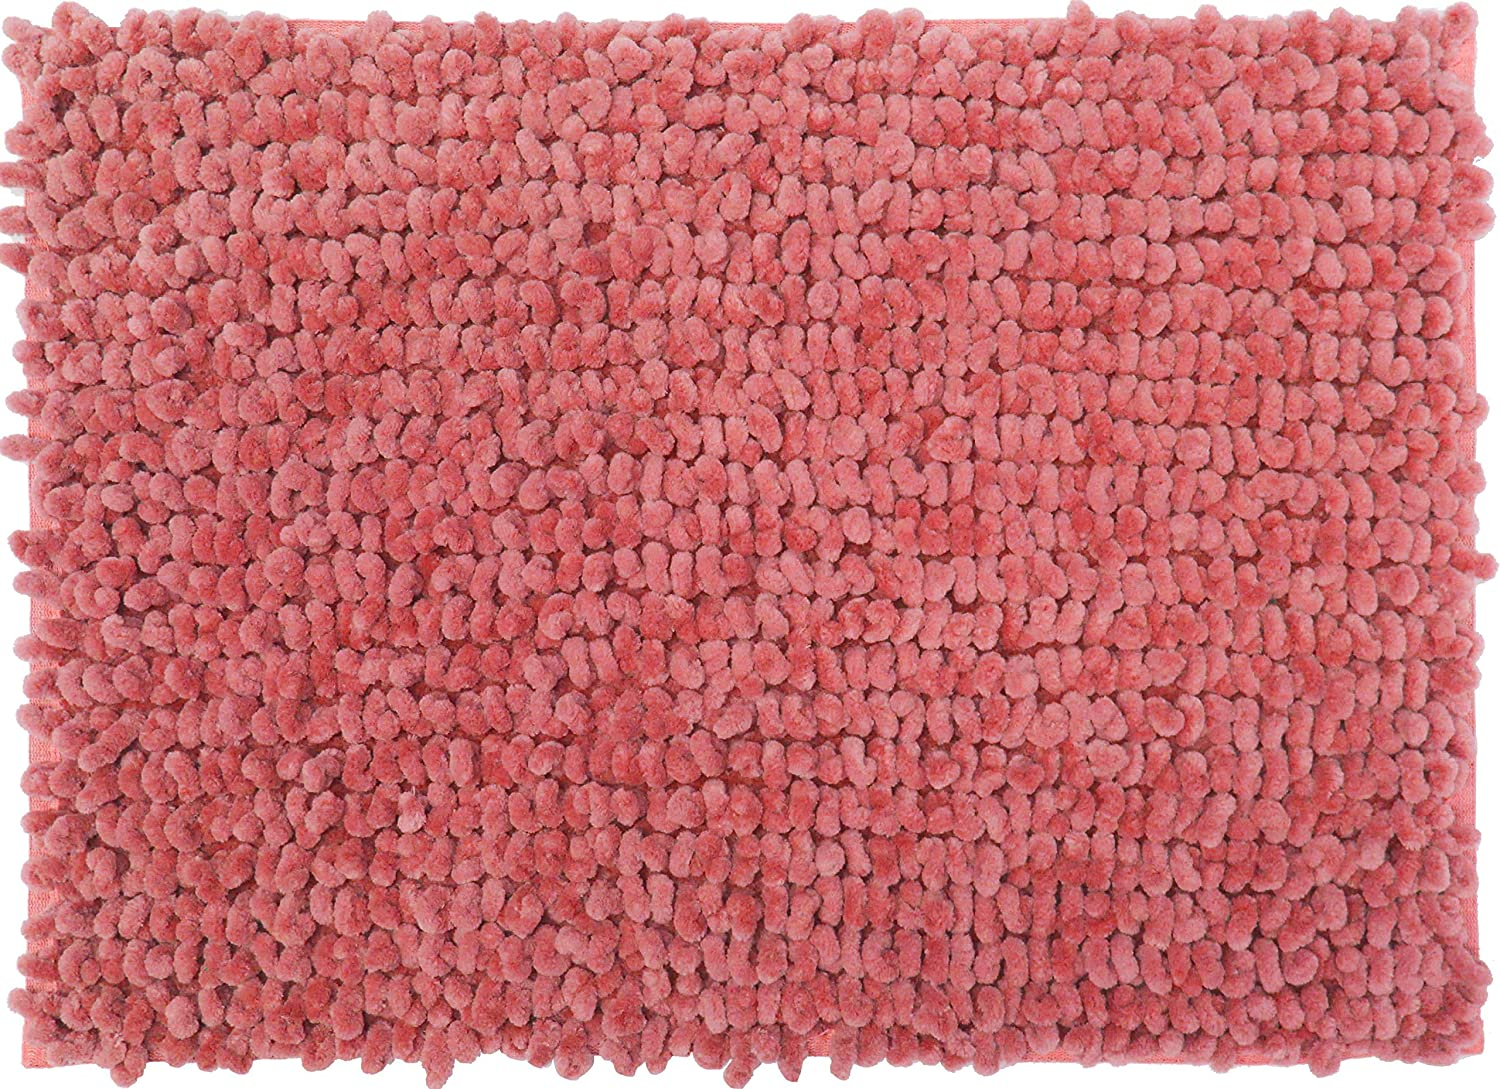 Casale Home 847431000342 New Cut & Large Loop Microfiber Chenille Area Rug, 4x6', Coral